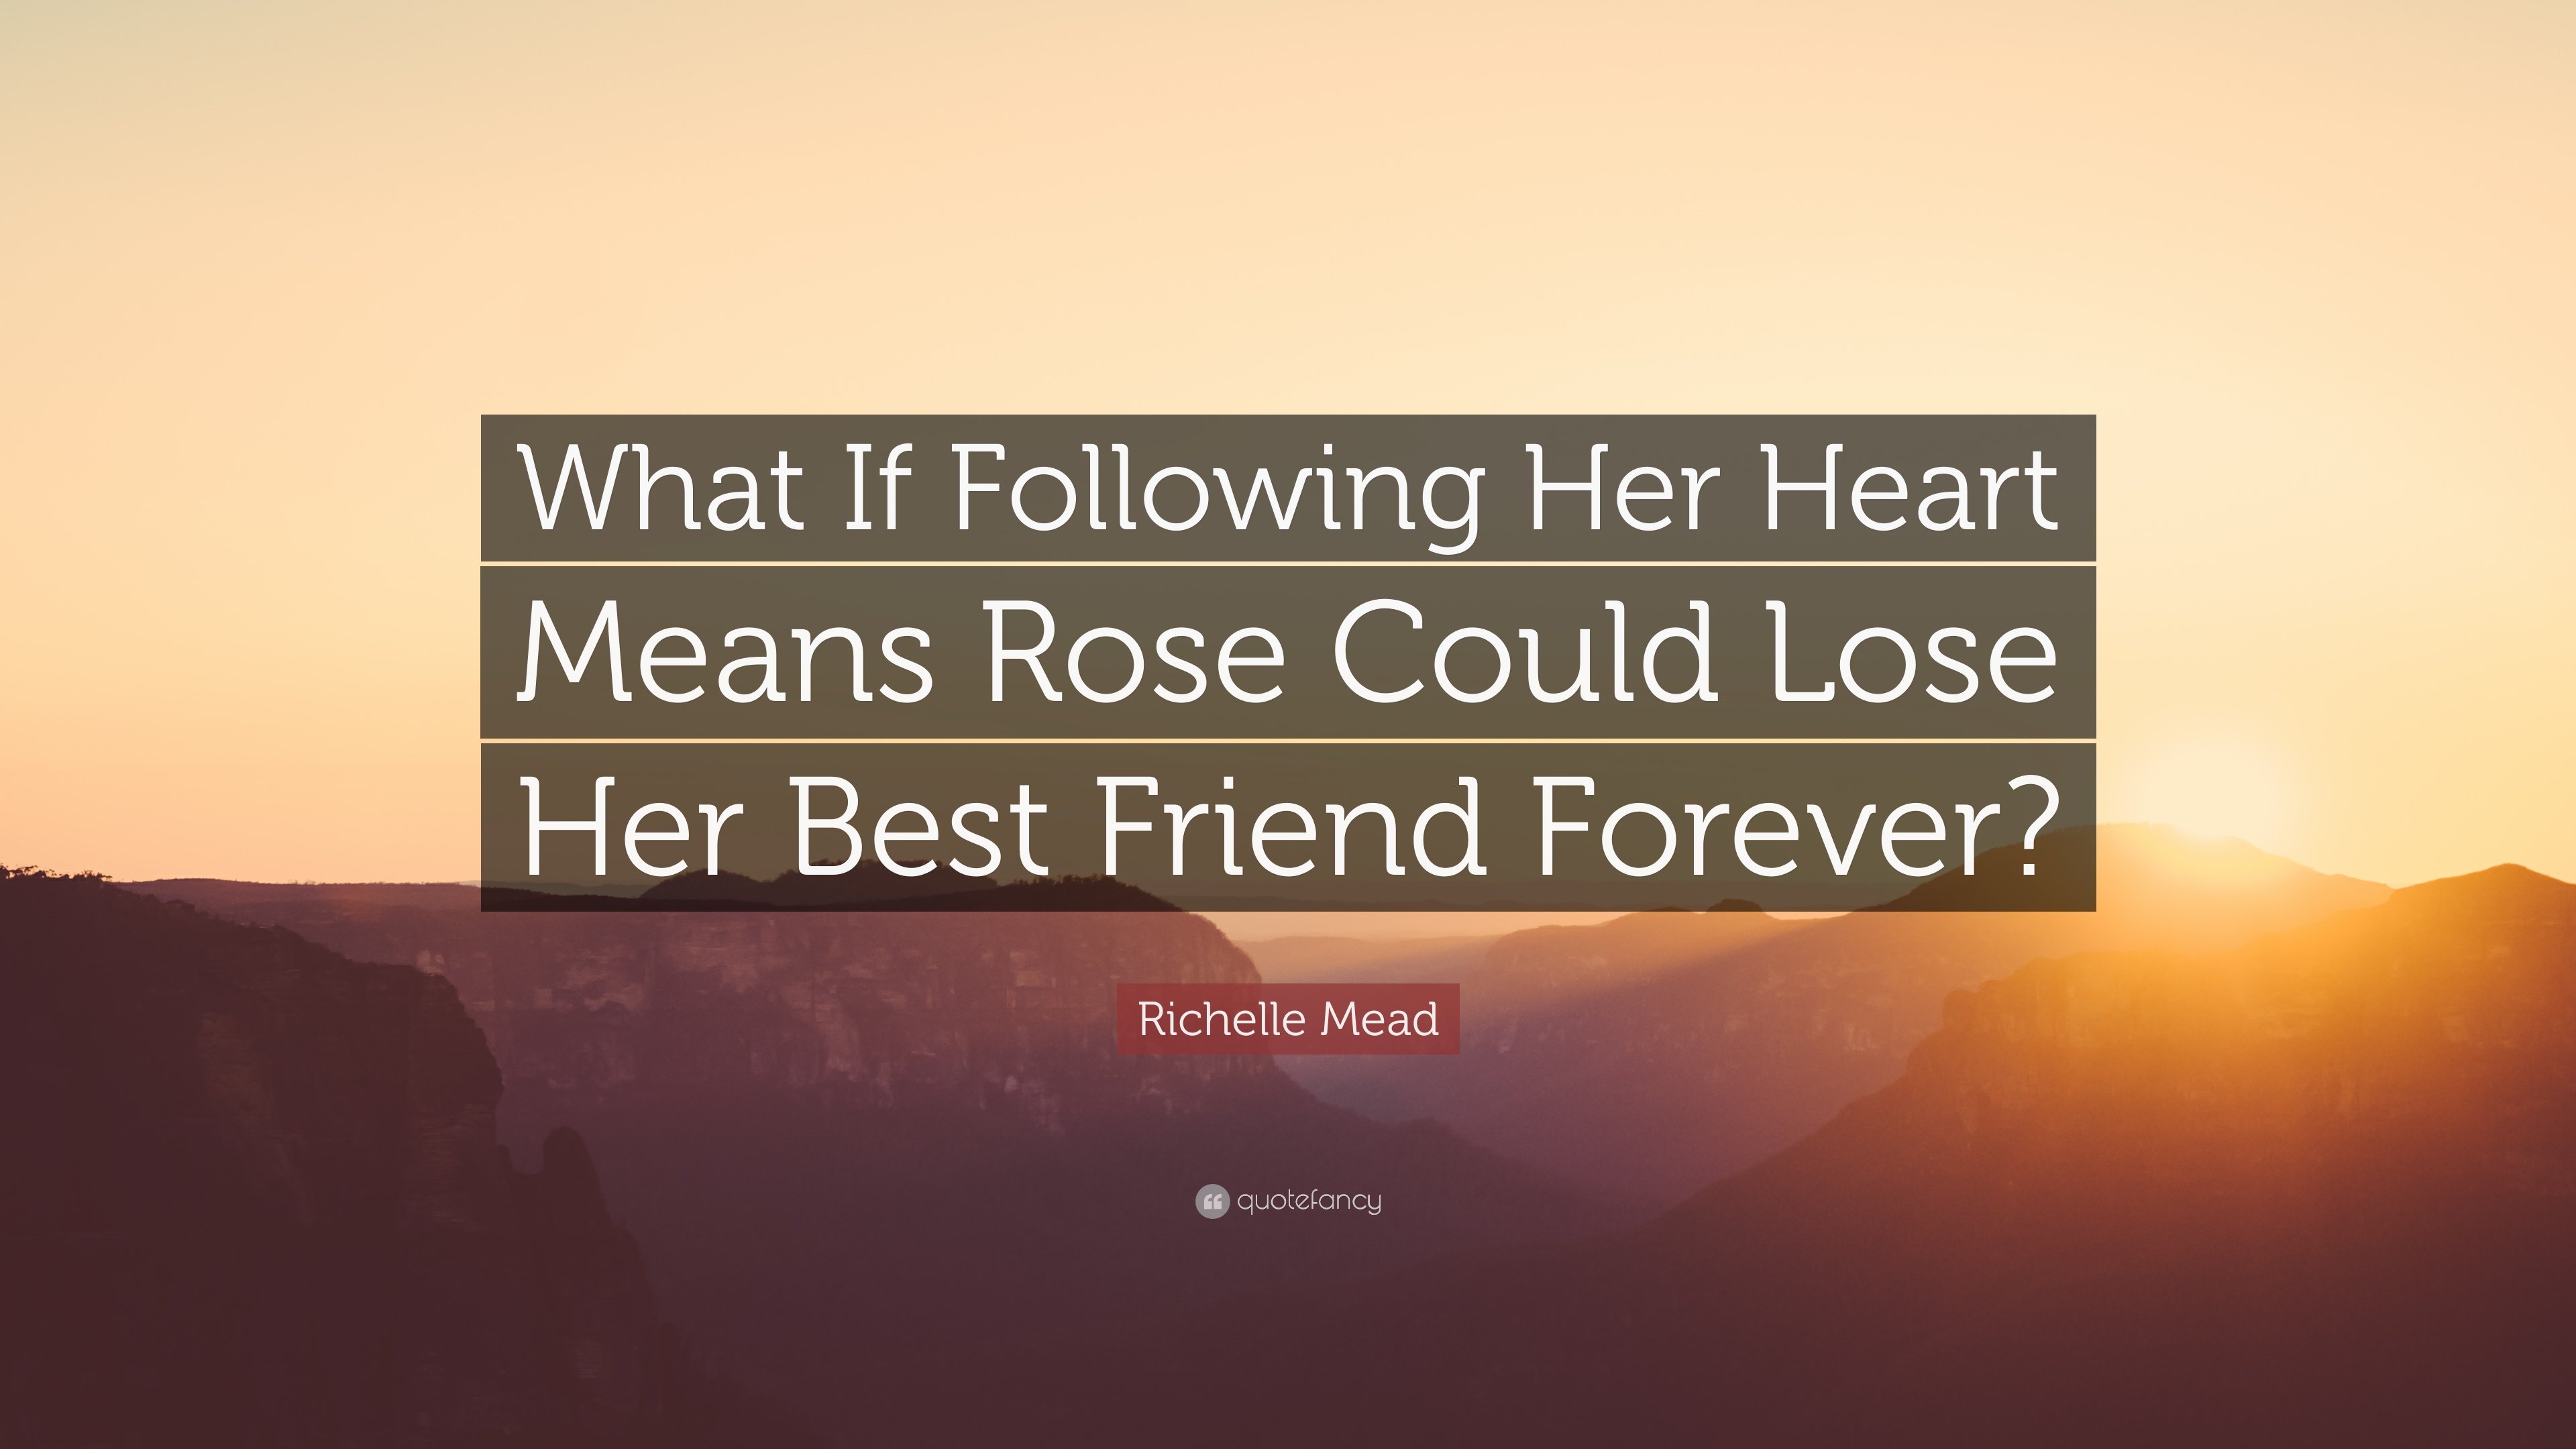 Richelle Mead Quote What If Following Her Heart Means Rose Could Lose Best